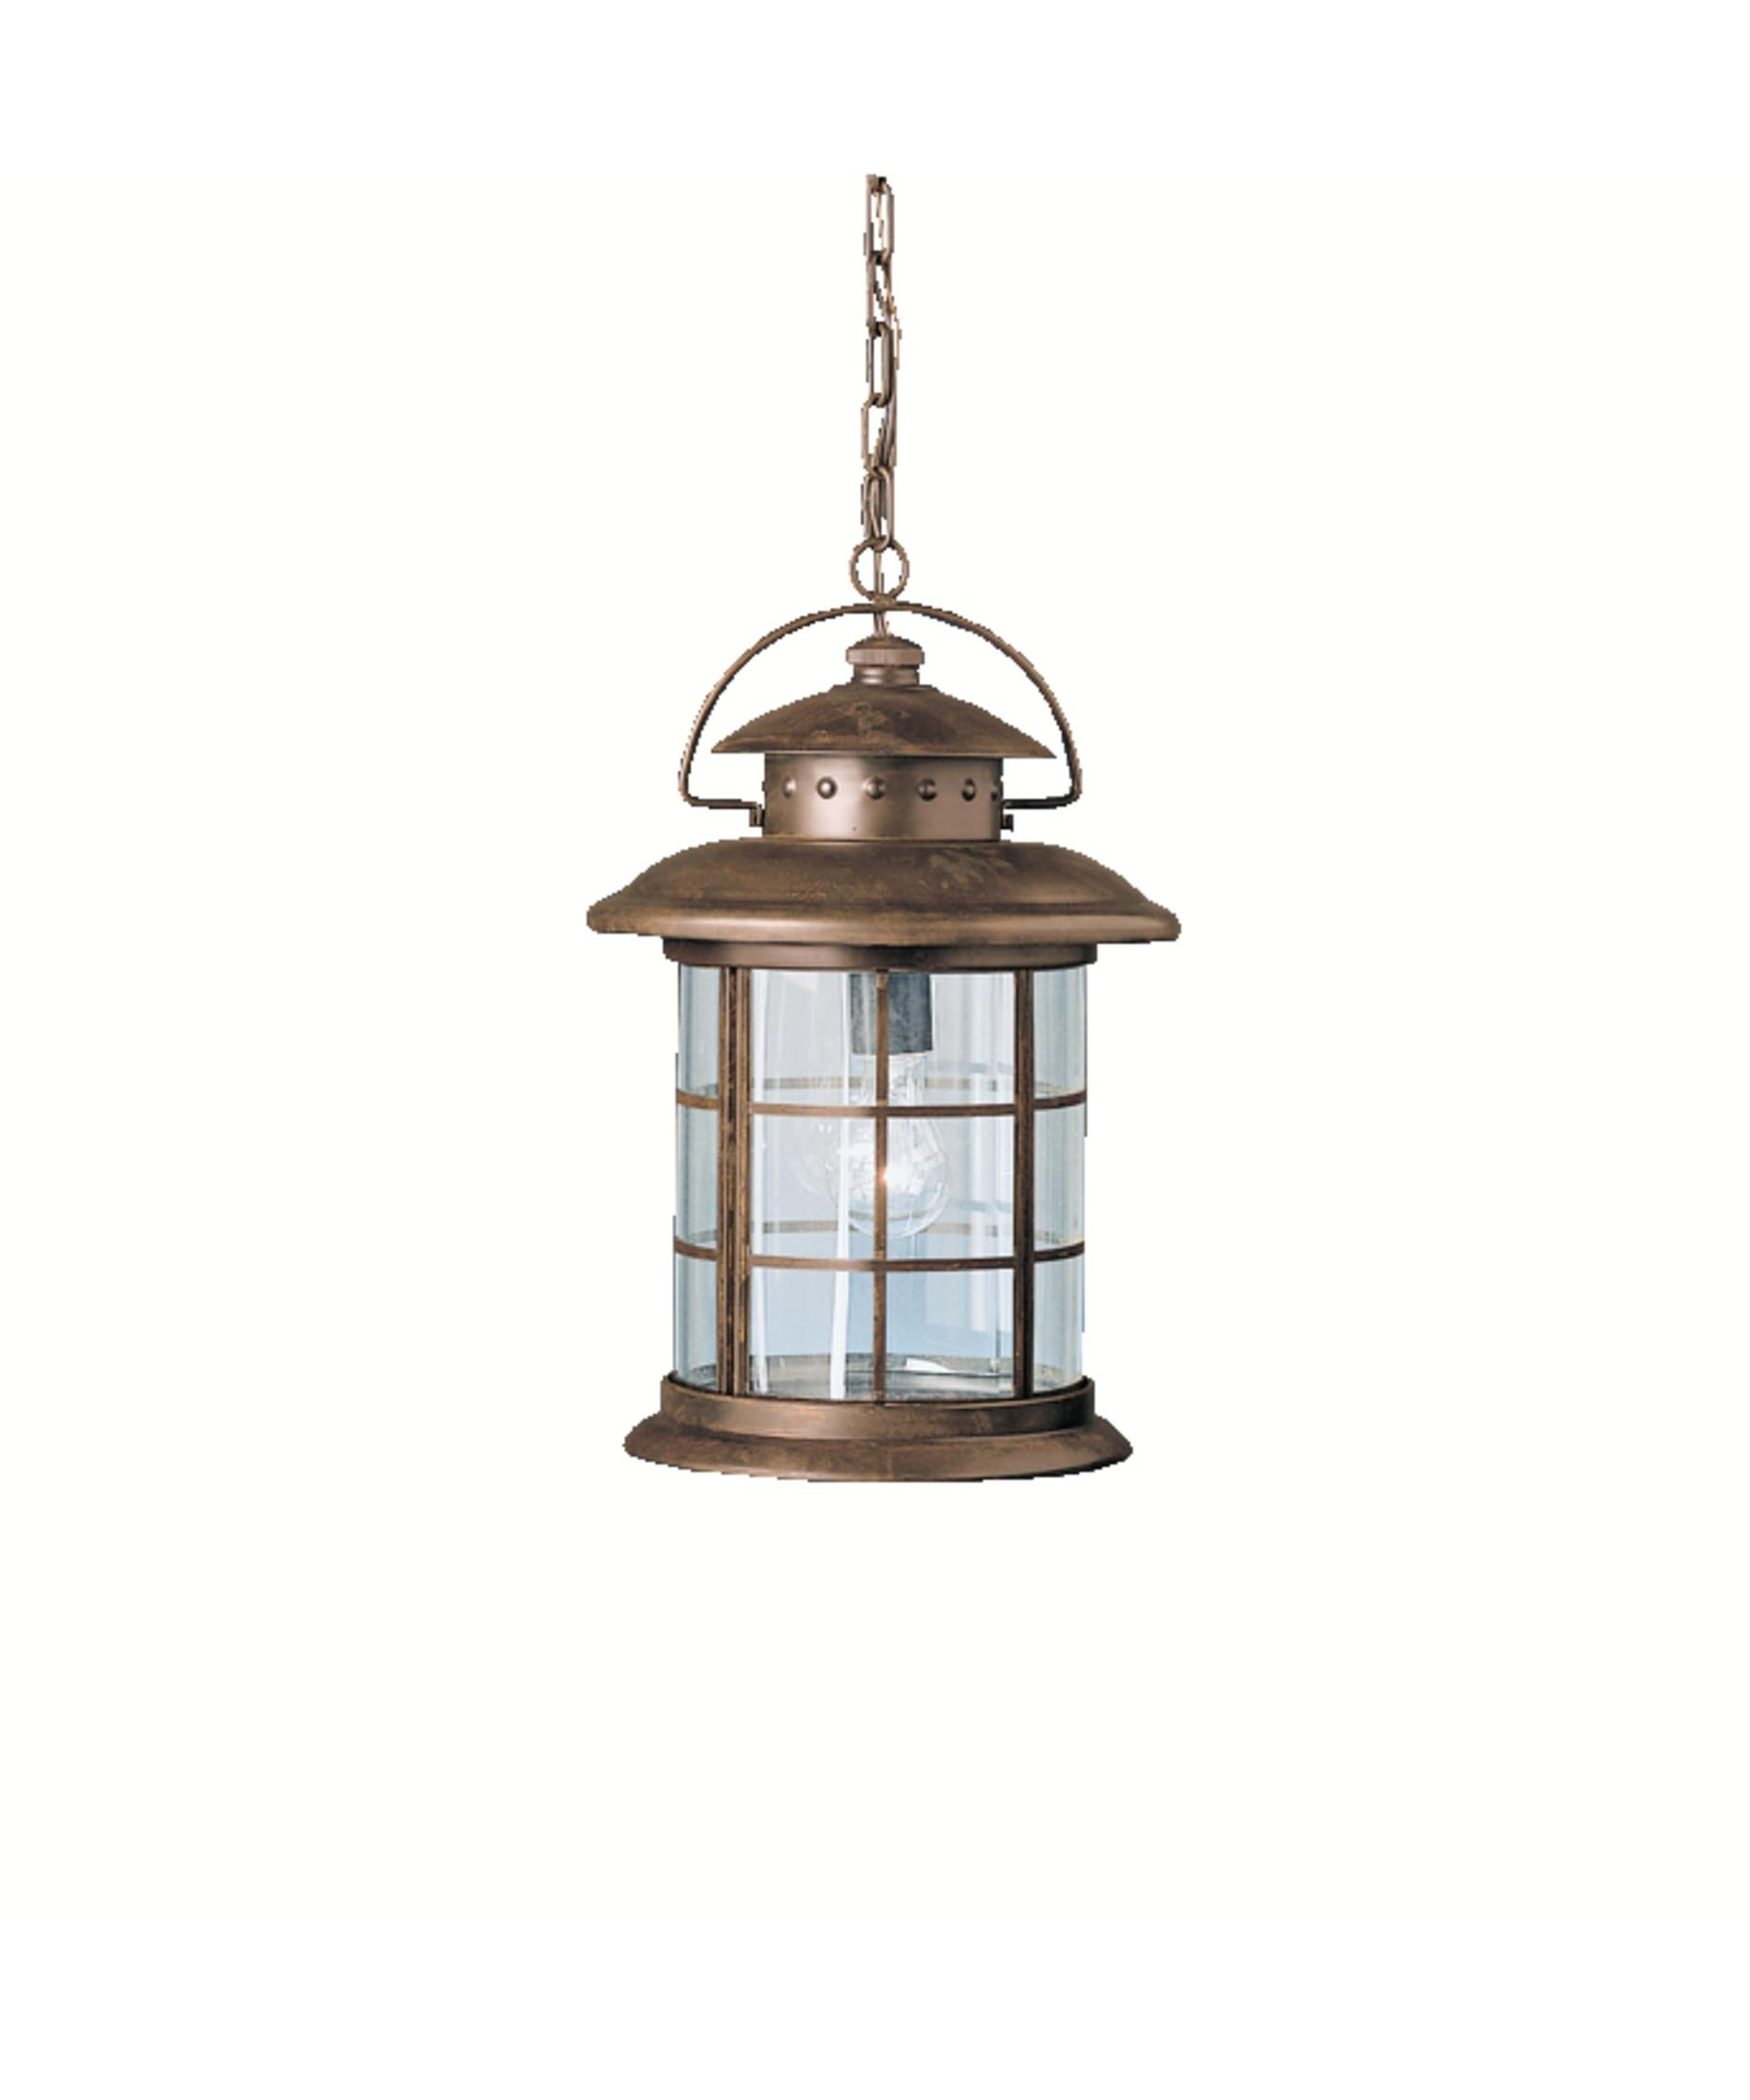 Well Known Kichler 9870 Rustic 11 Inch Wide 1 Light Outdoor Hanging Lantern For Outdoor Ceiling Pendant Lights (View 19 of 20)